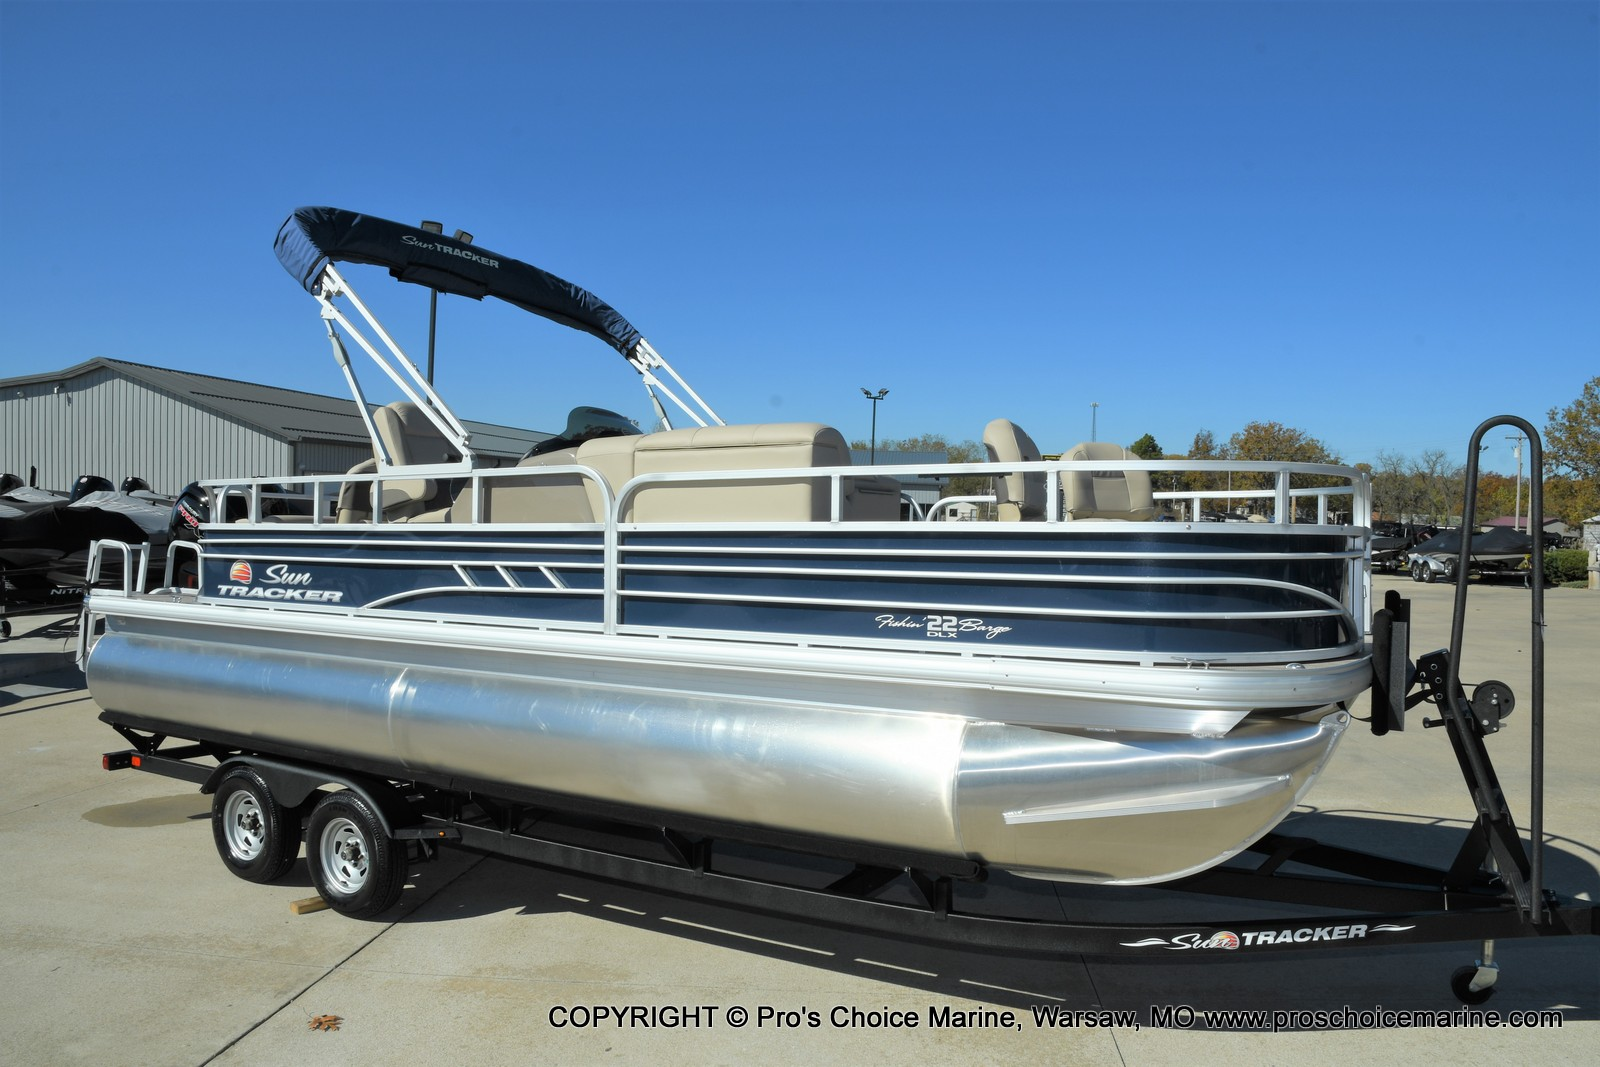 2021 Sun Tracker boat for sale, model of the boat is FISHIN BARGE 22 DLX & Image # 12 of 50